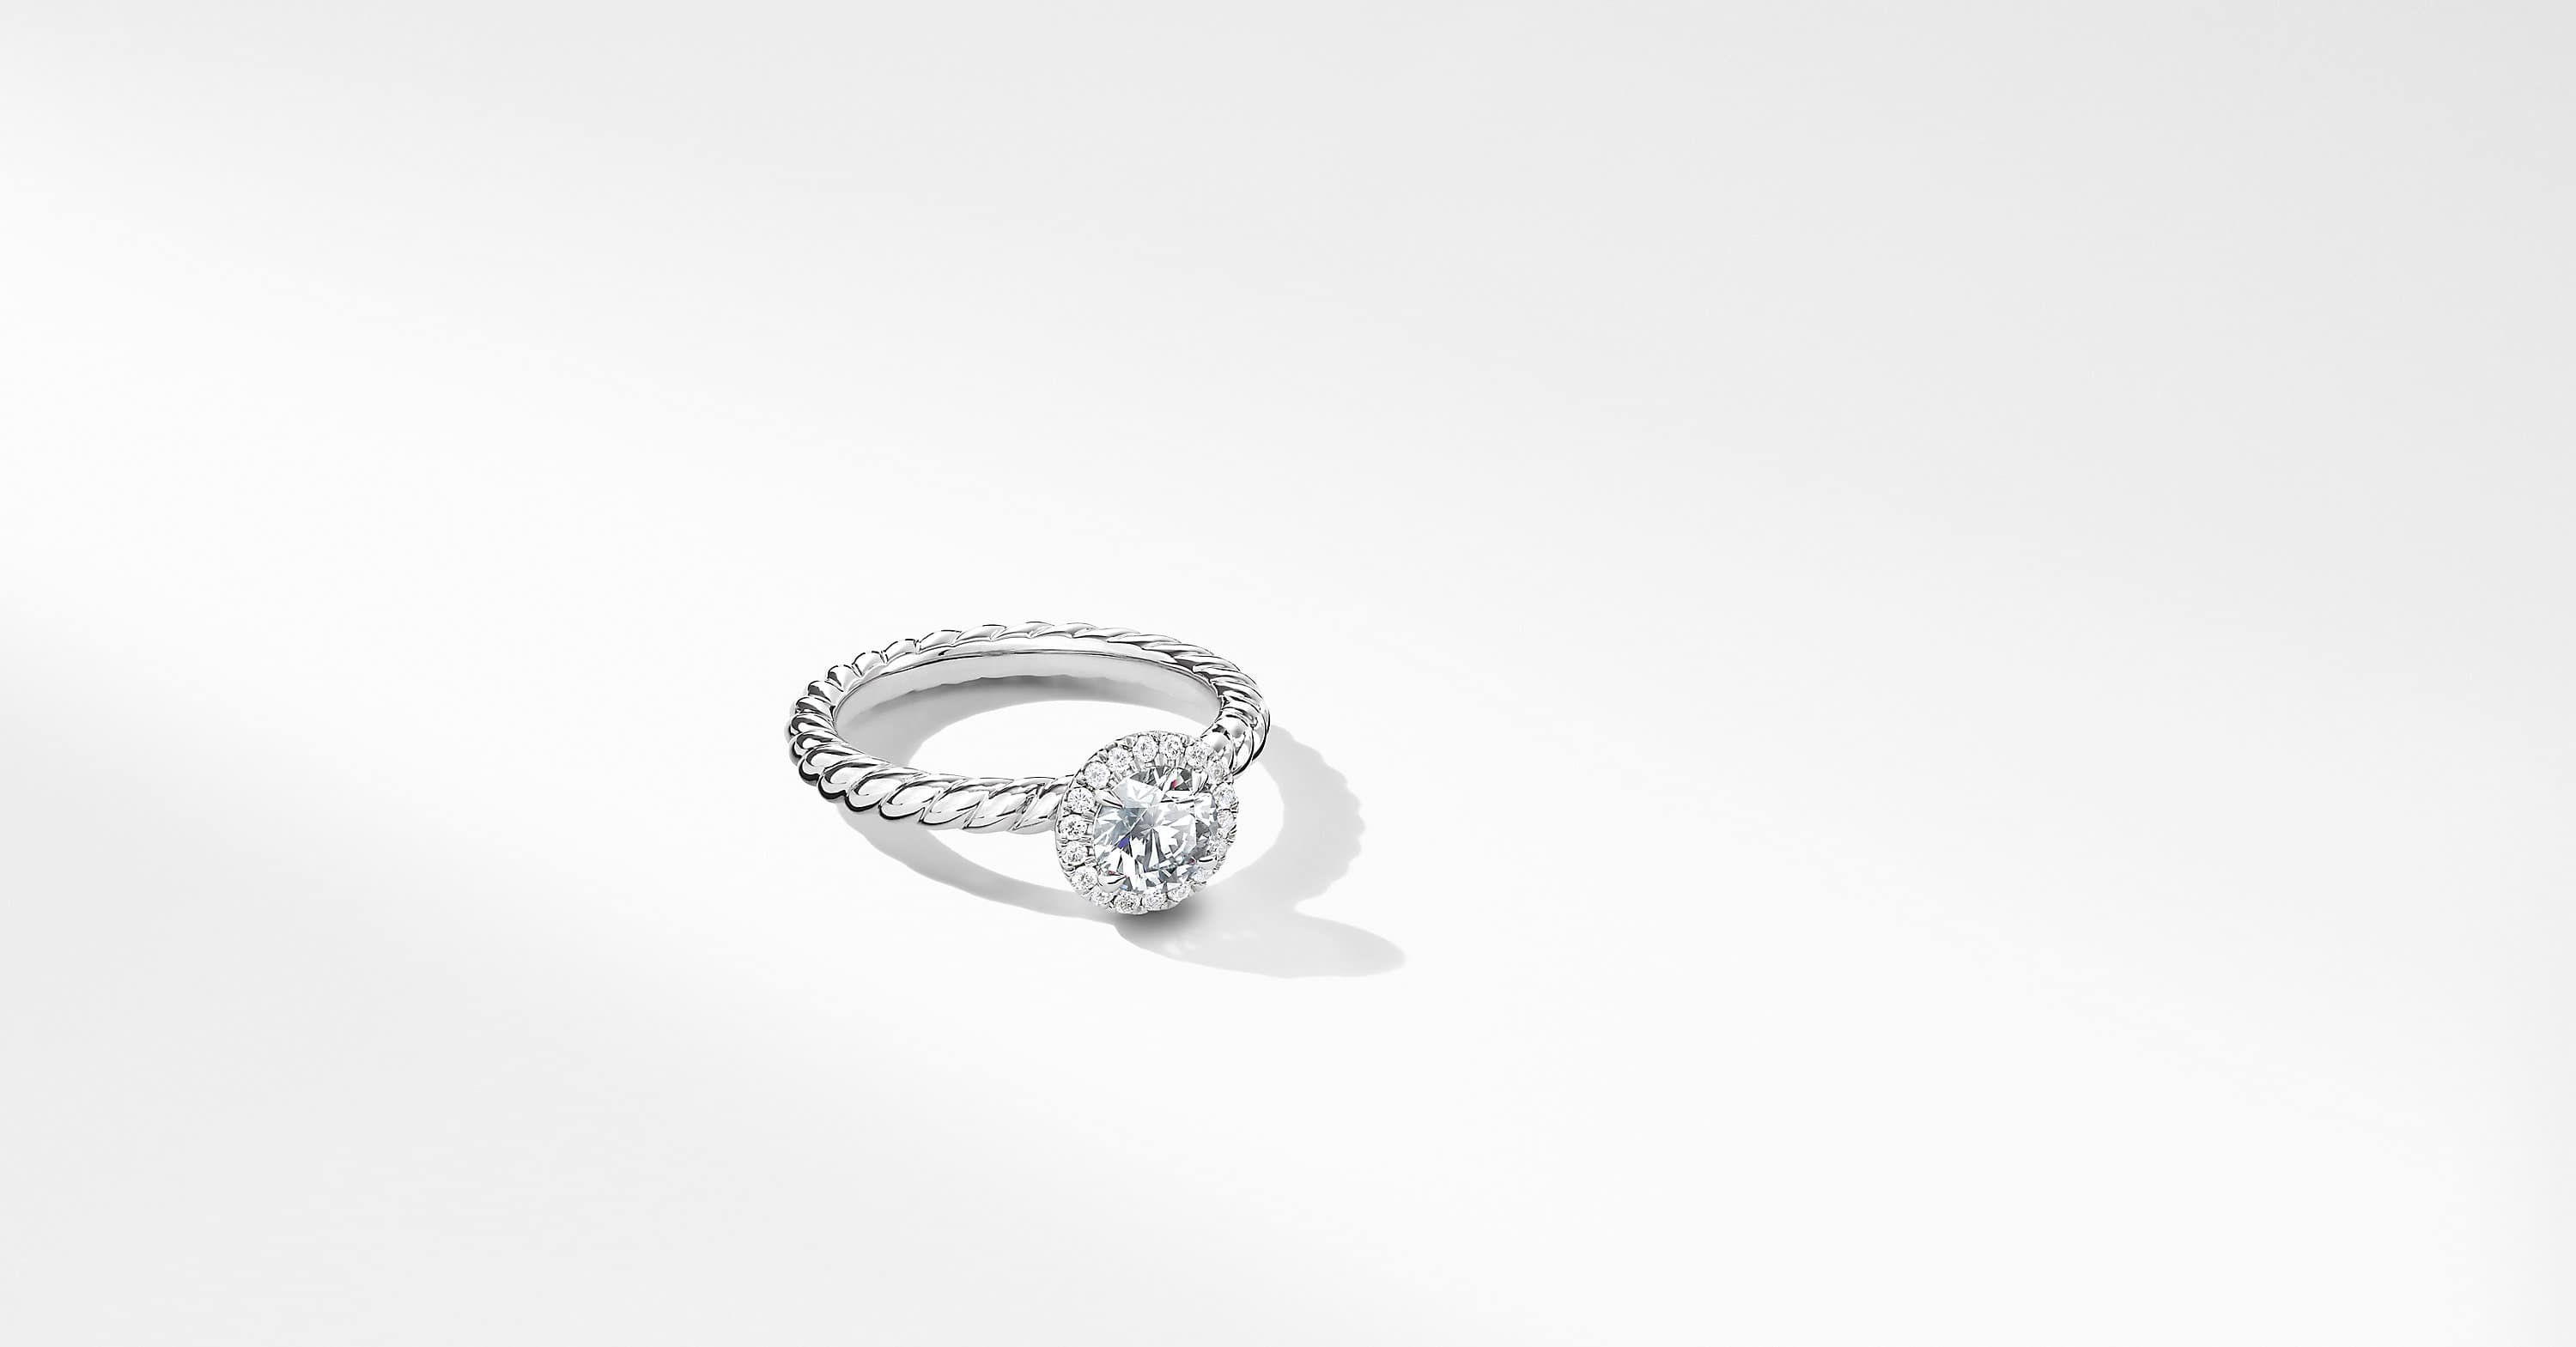 DY Capri Petite Engagement Ring in Platinum, Round